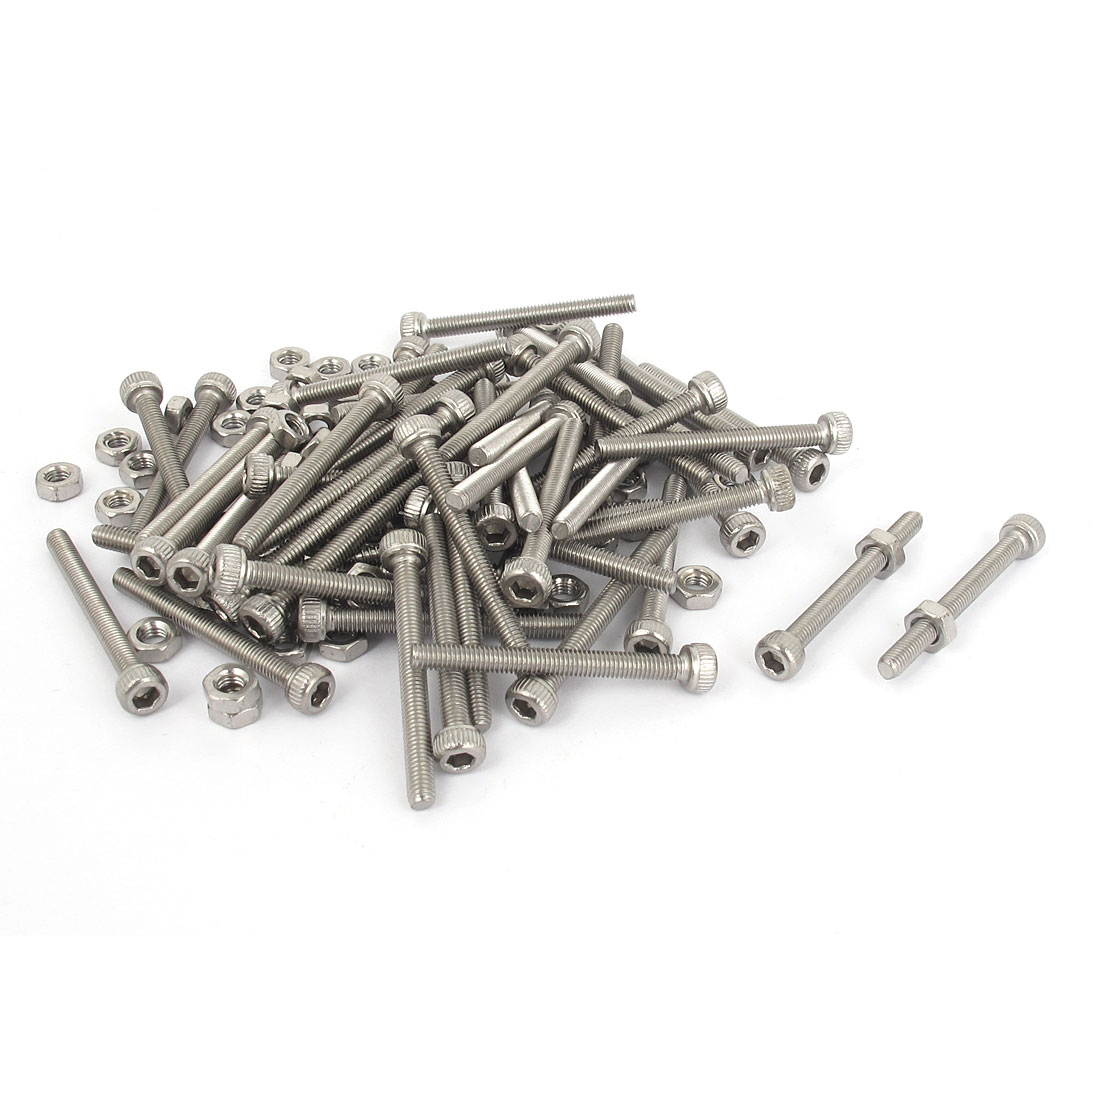 M3x30mm Stainless Steel Hex Socket Head Knurled Cap Screws Bolts Nut Set 50Pcs